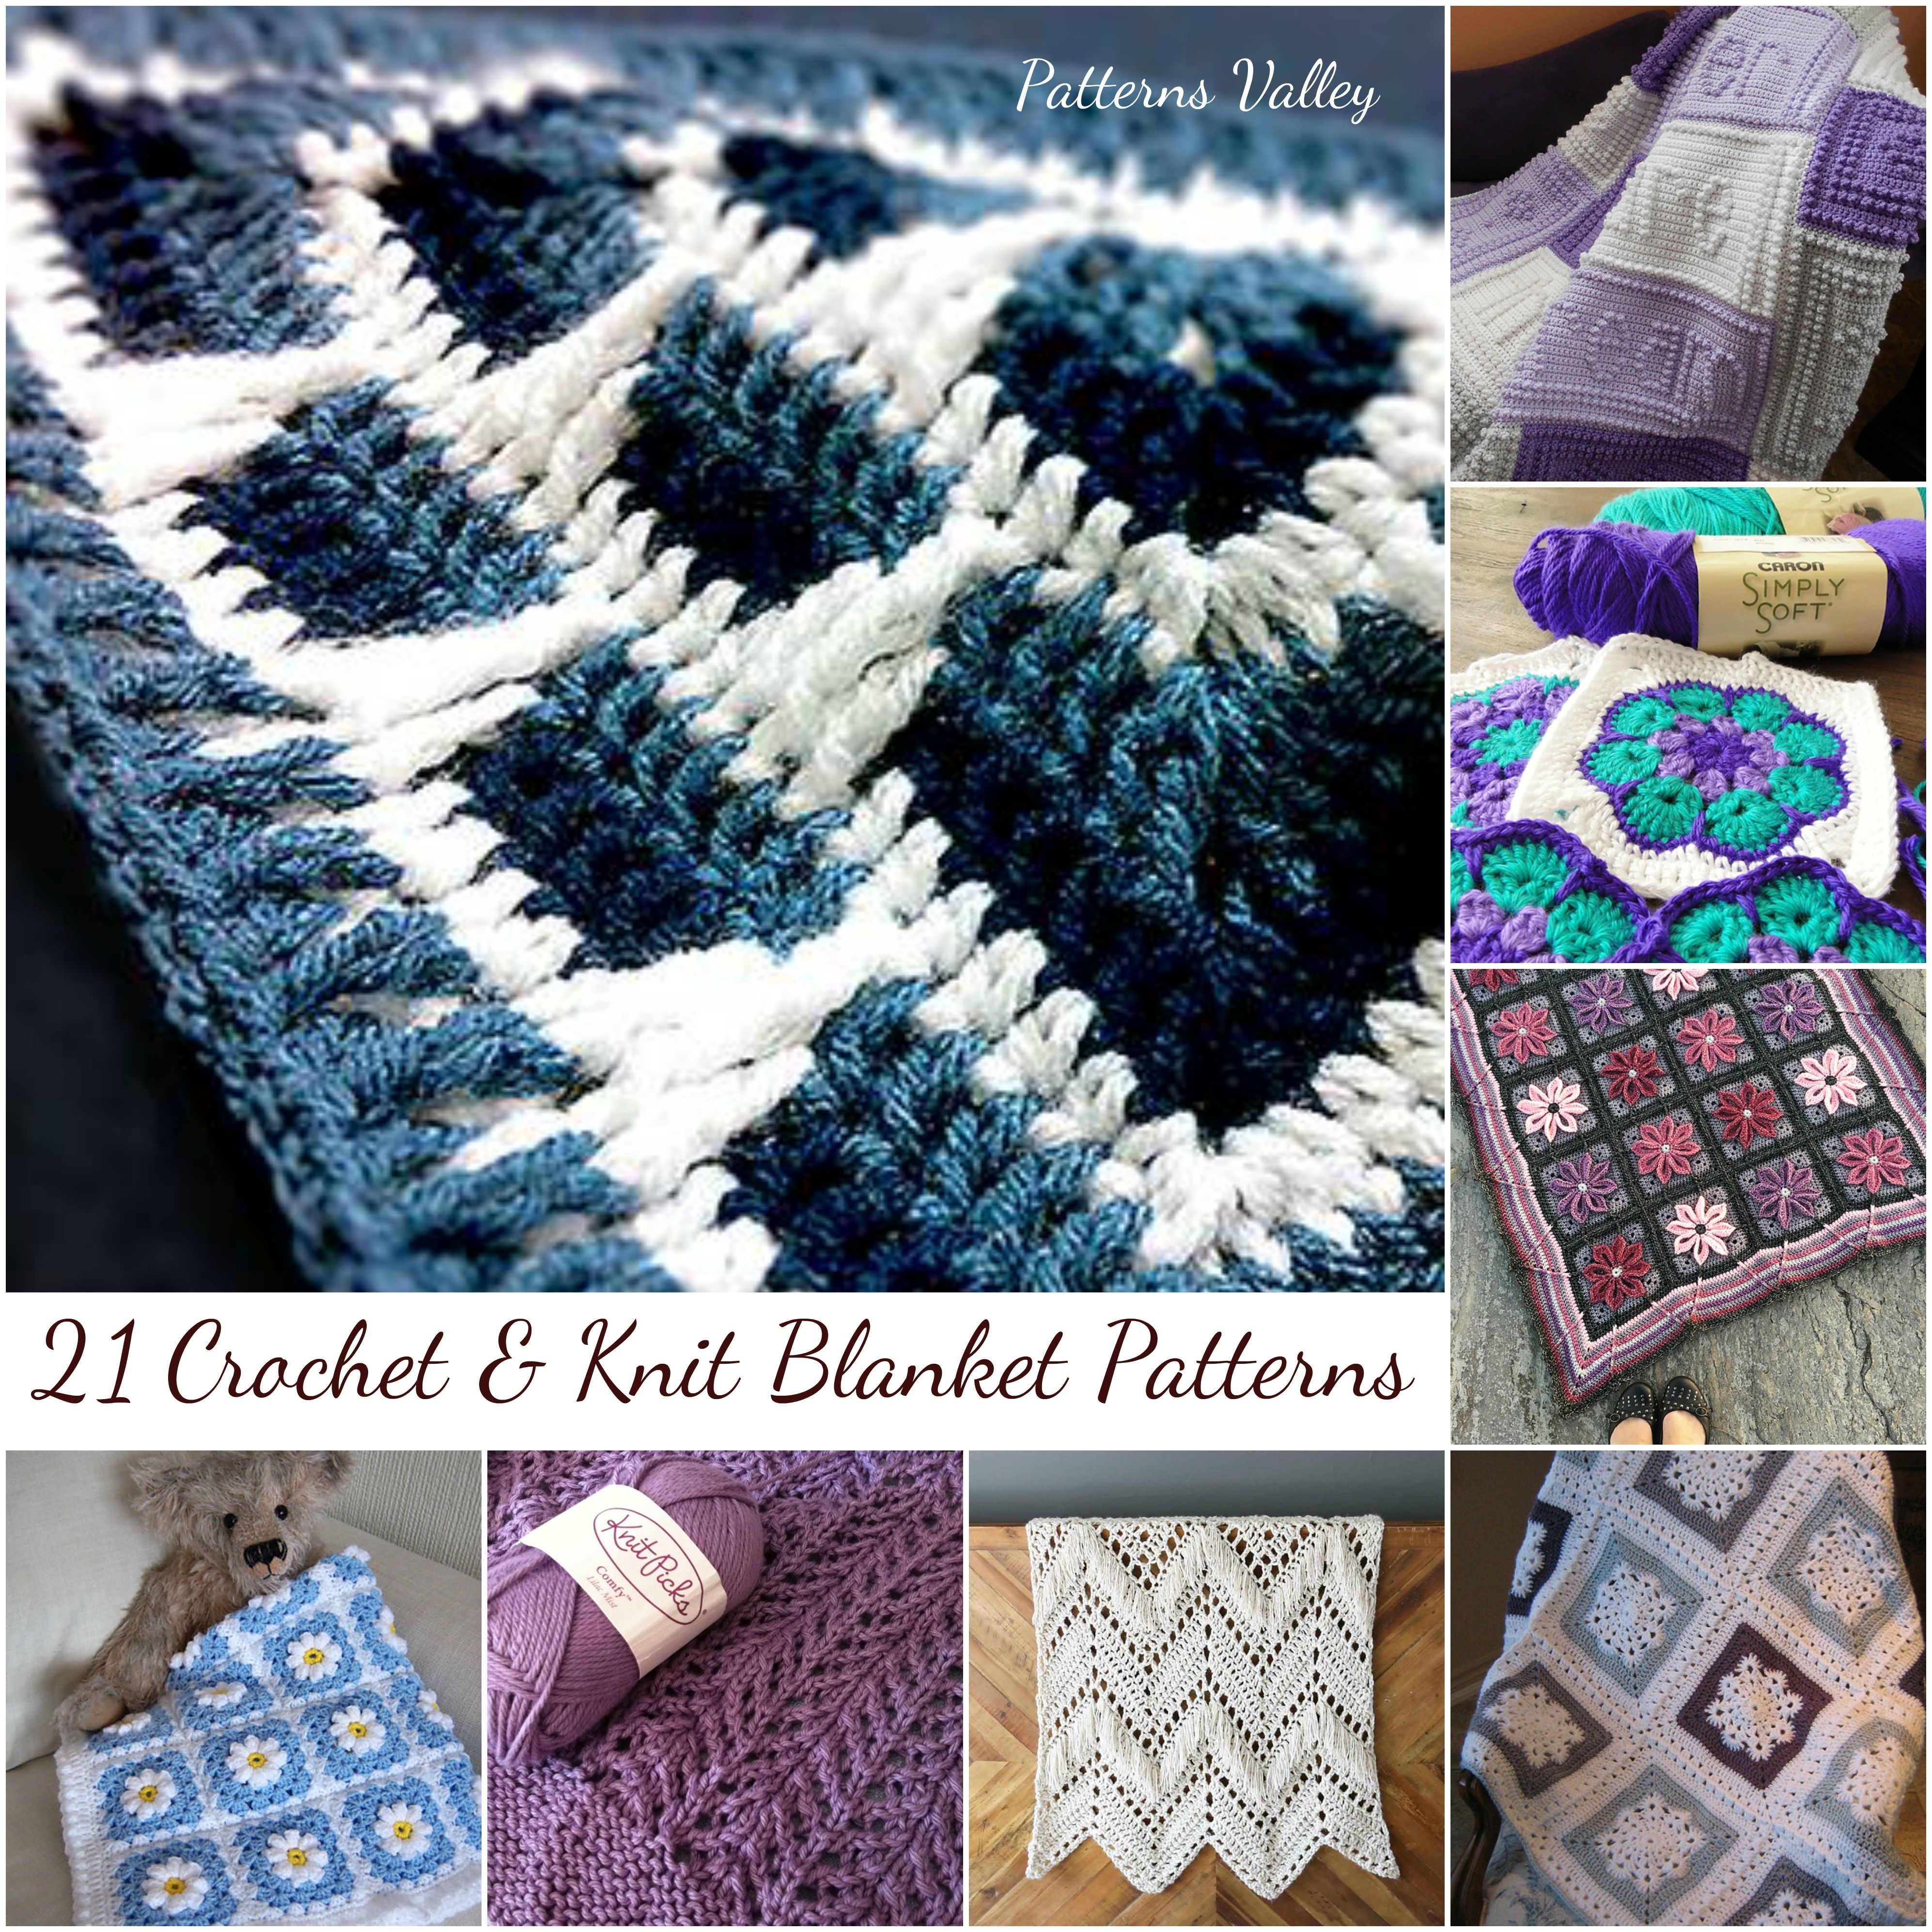 21+ Crochet & Knit Blankets Patterns You should try this winter! Download and start crochet or knit! #crocheting #knitting